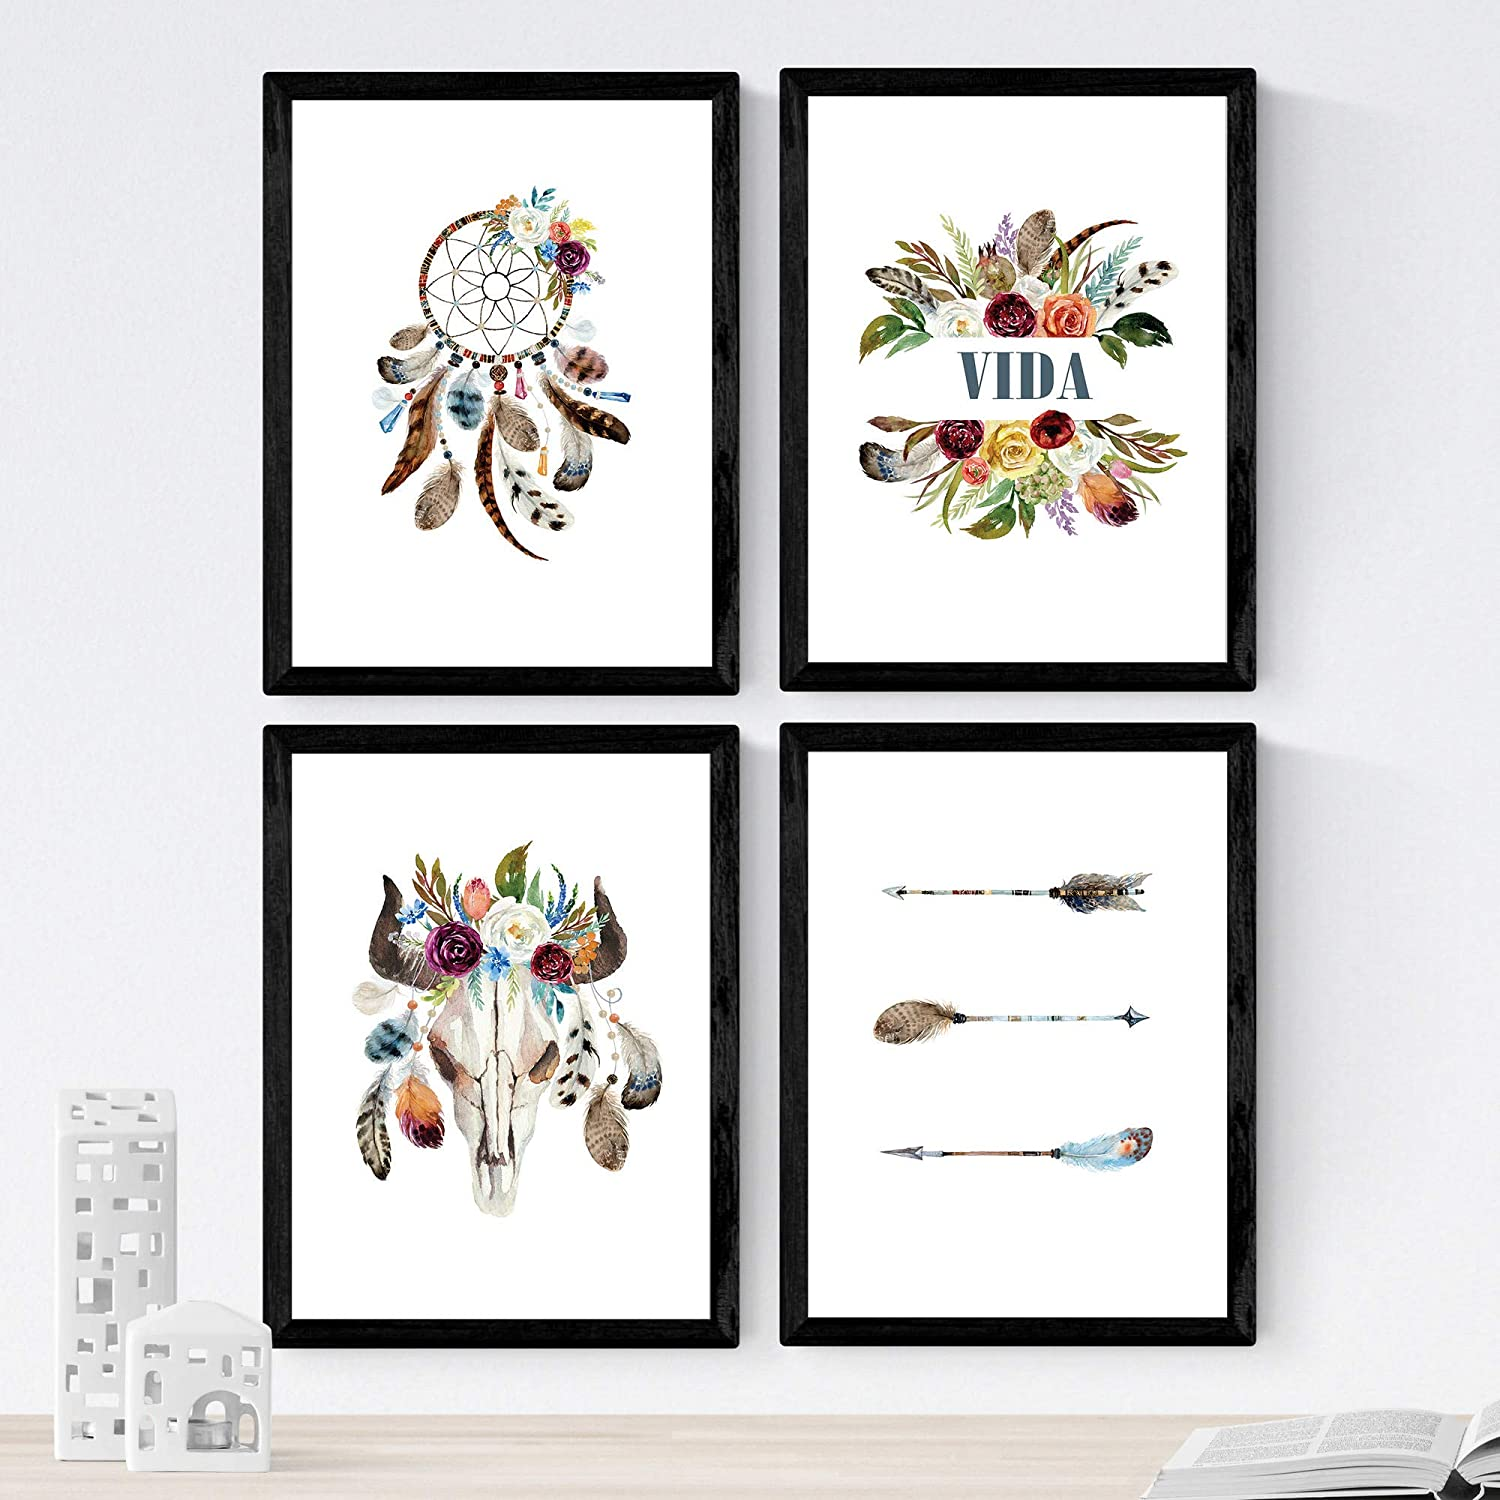 Nacnic Set of 4 Sheets of Plumas, 8'x11' Size, Poster Paper 250 gr. Frameless